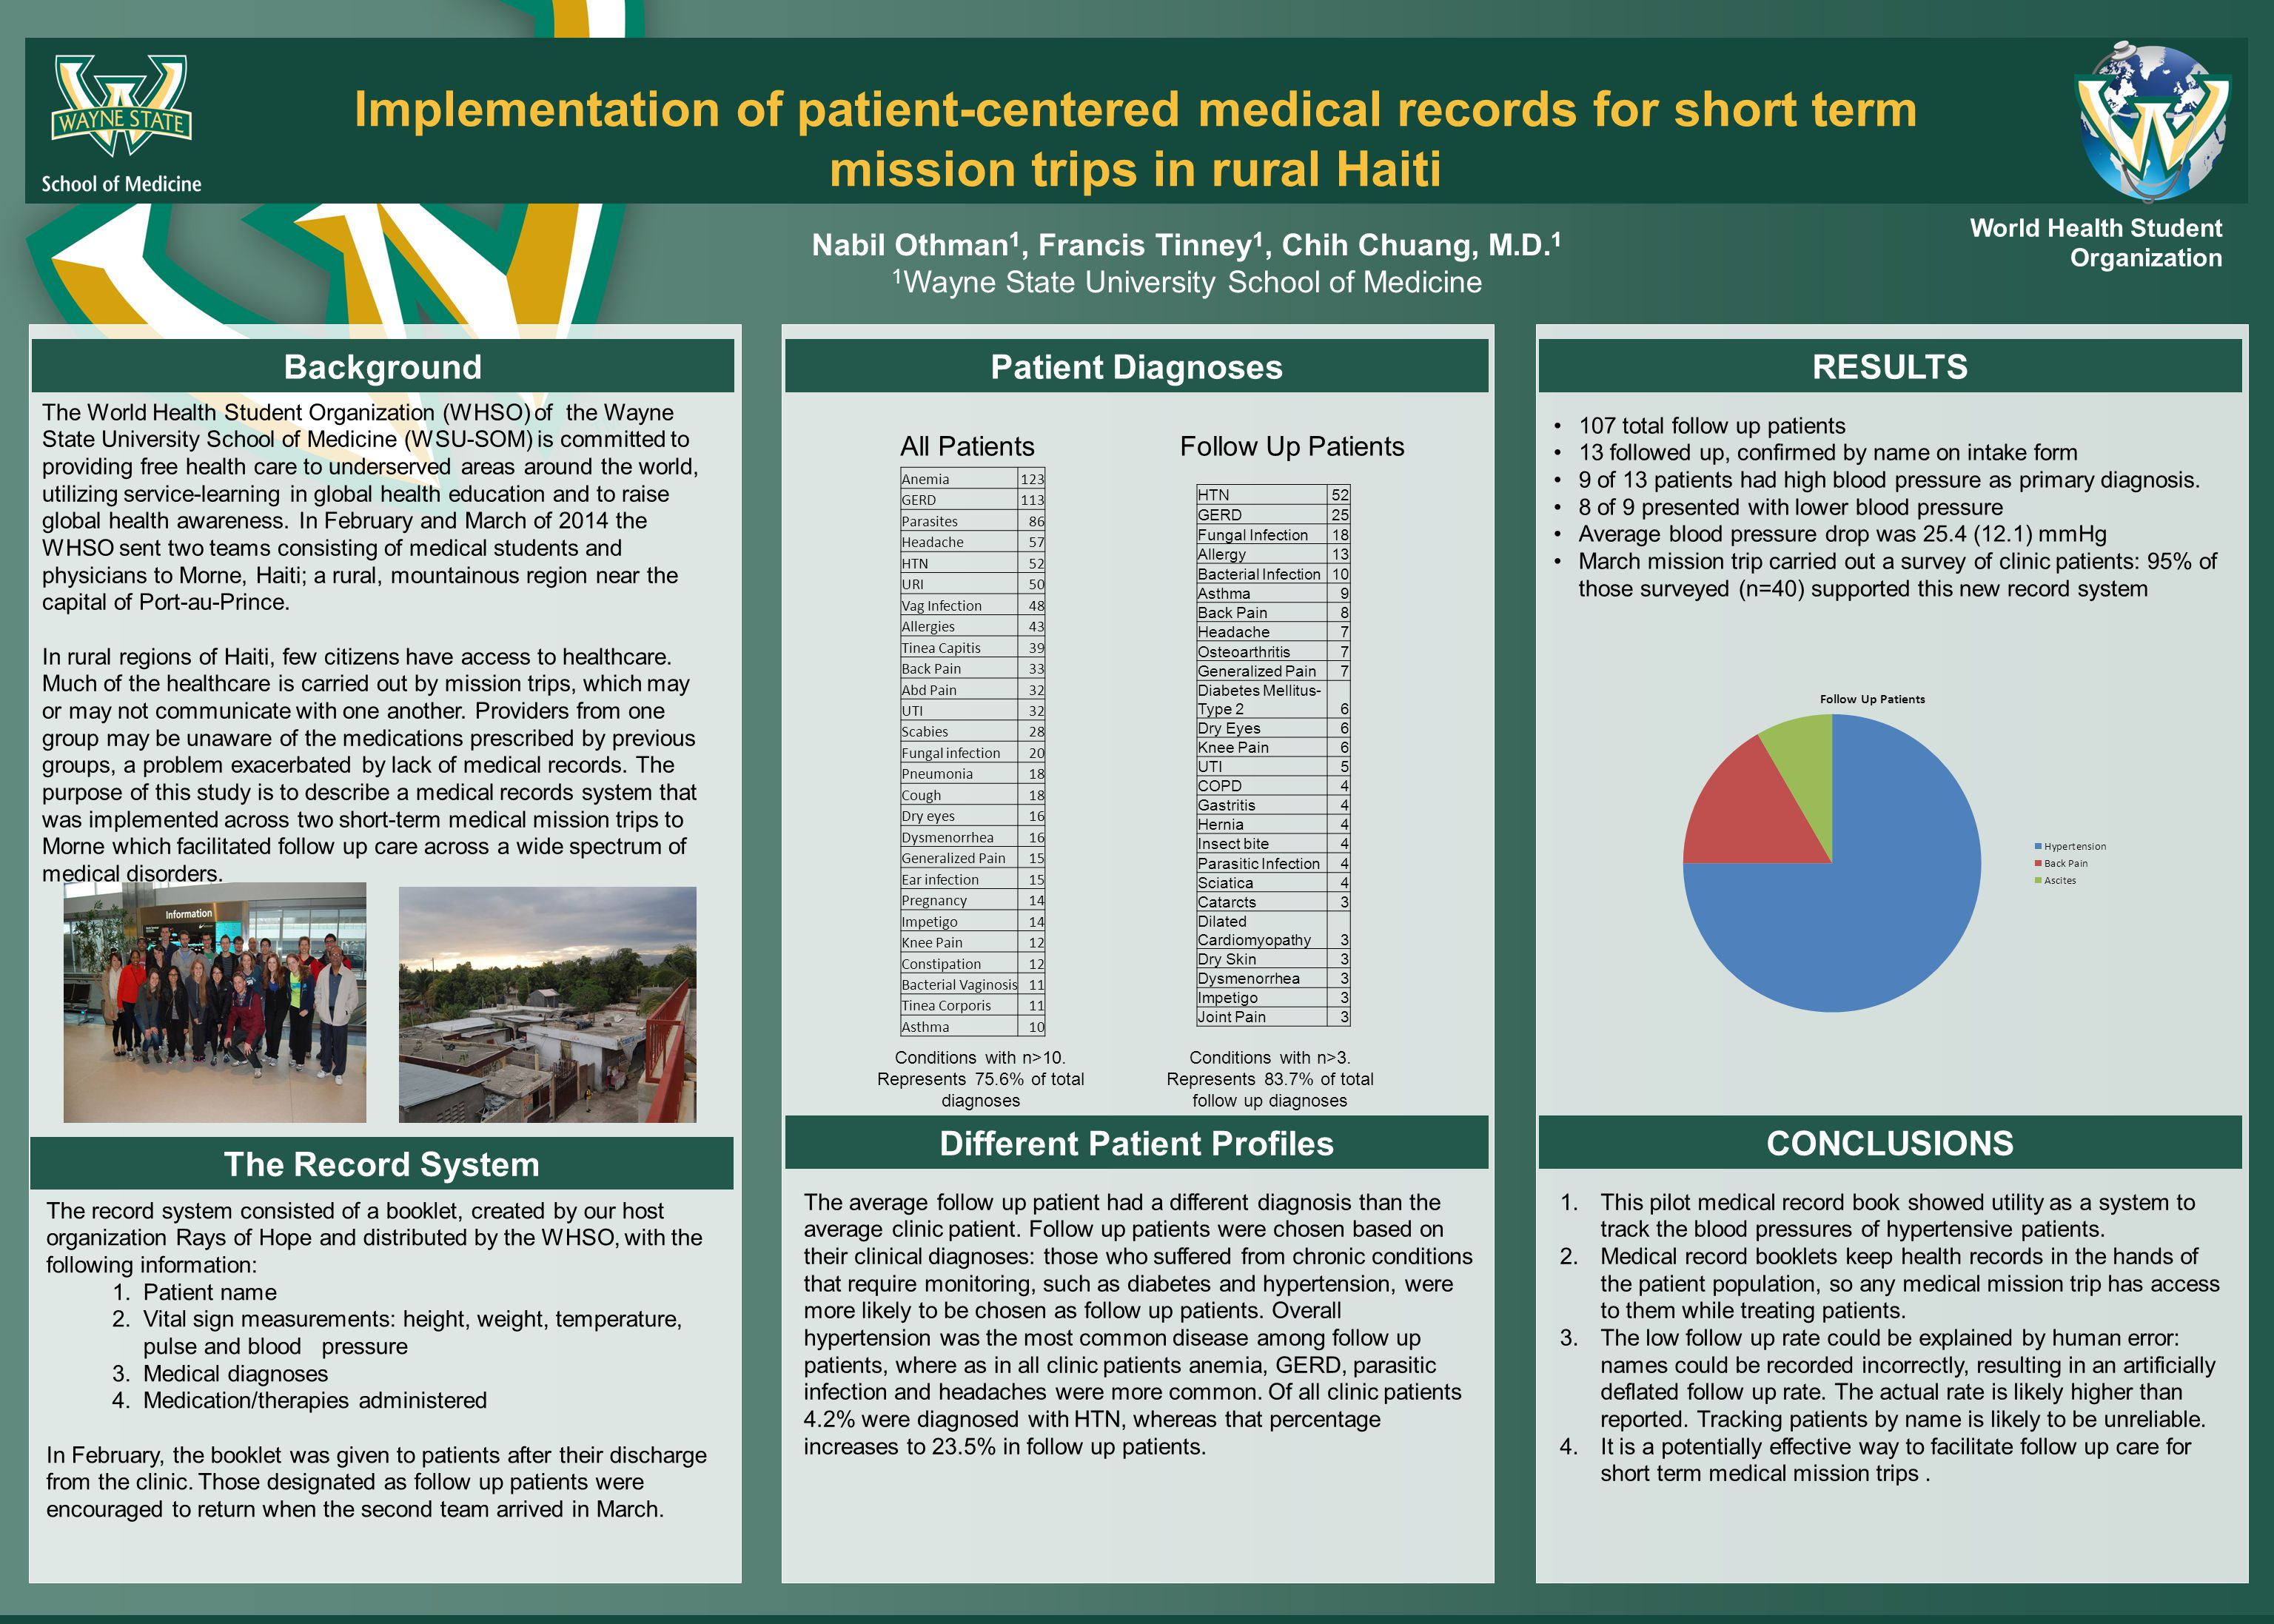 Implementation of patient-centered medical records for short term mission trips in rural Haiti Nabil Othman 1, Francis Tinney 1, Chih Chuang, M.D.